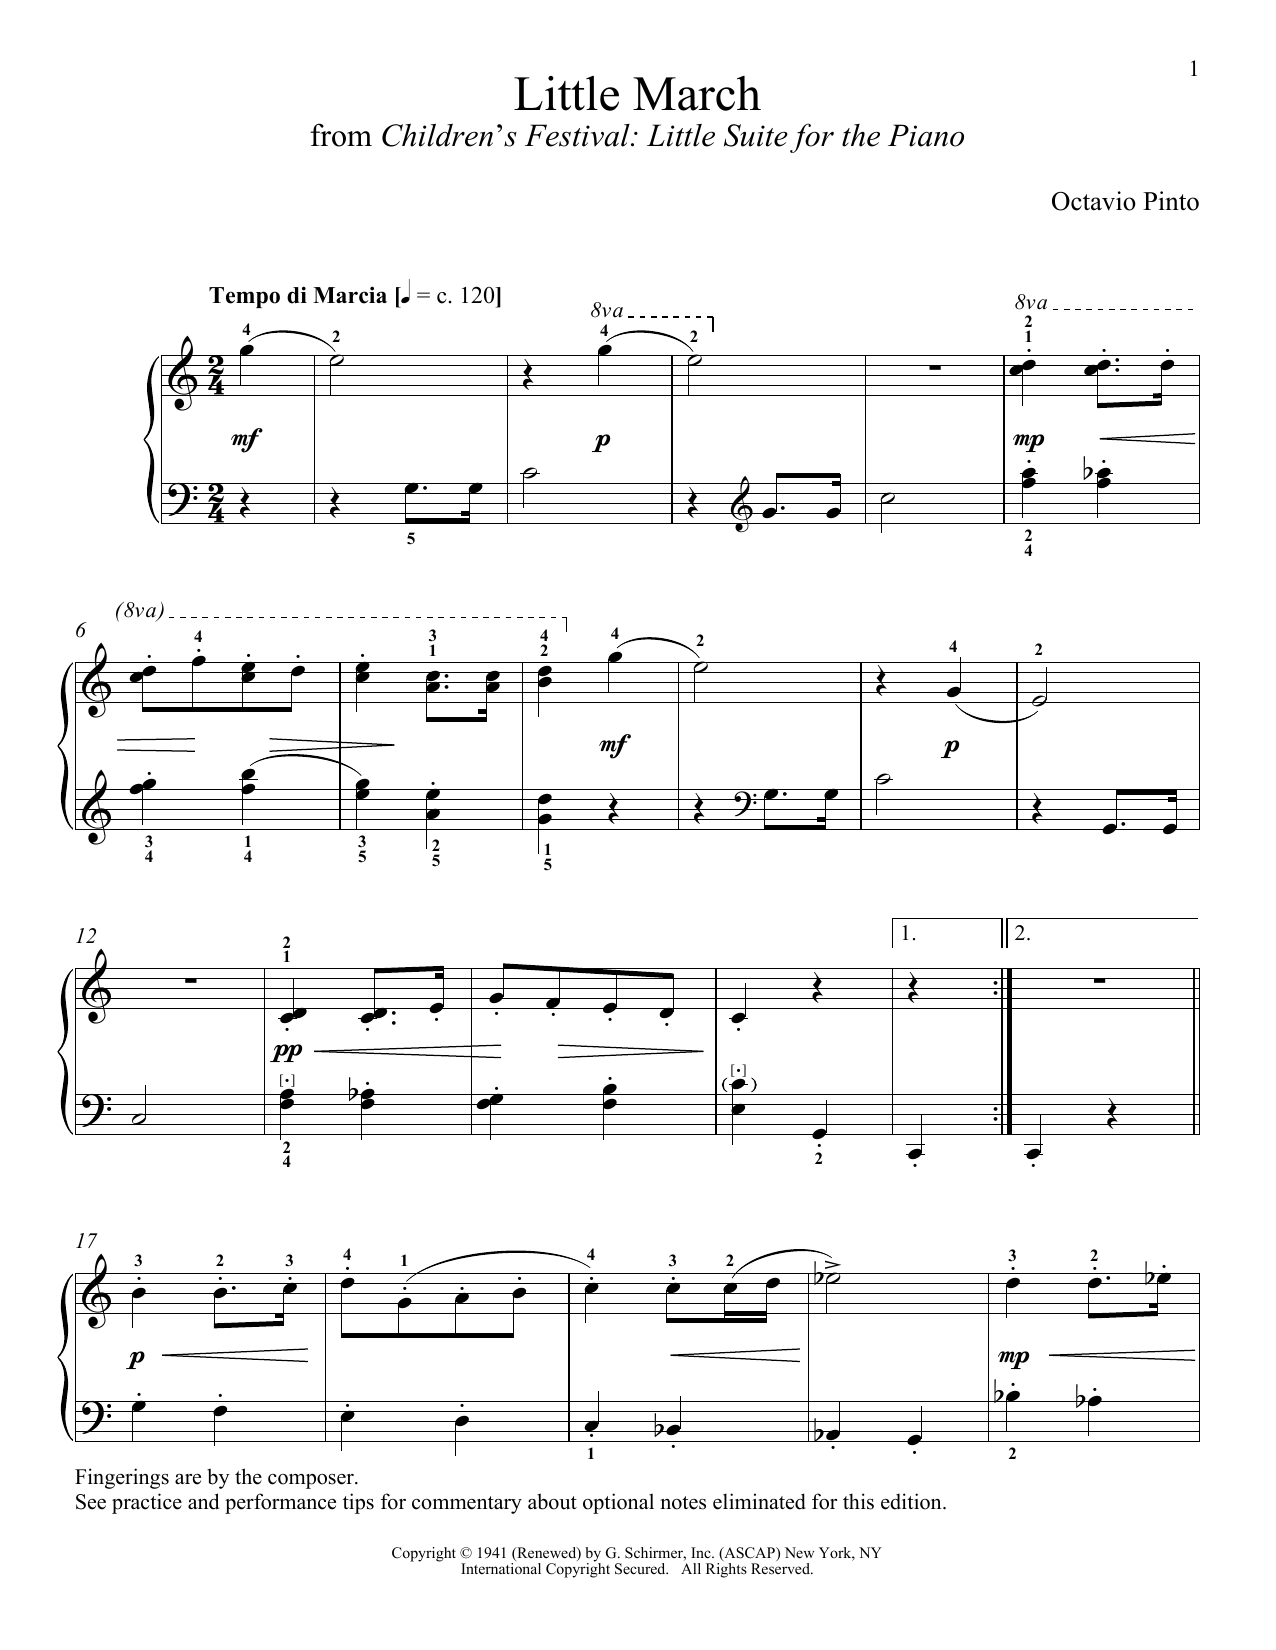 Octavio Pinto Little March sheet music notes and chords